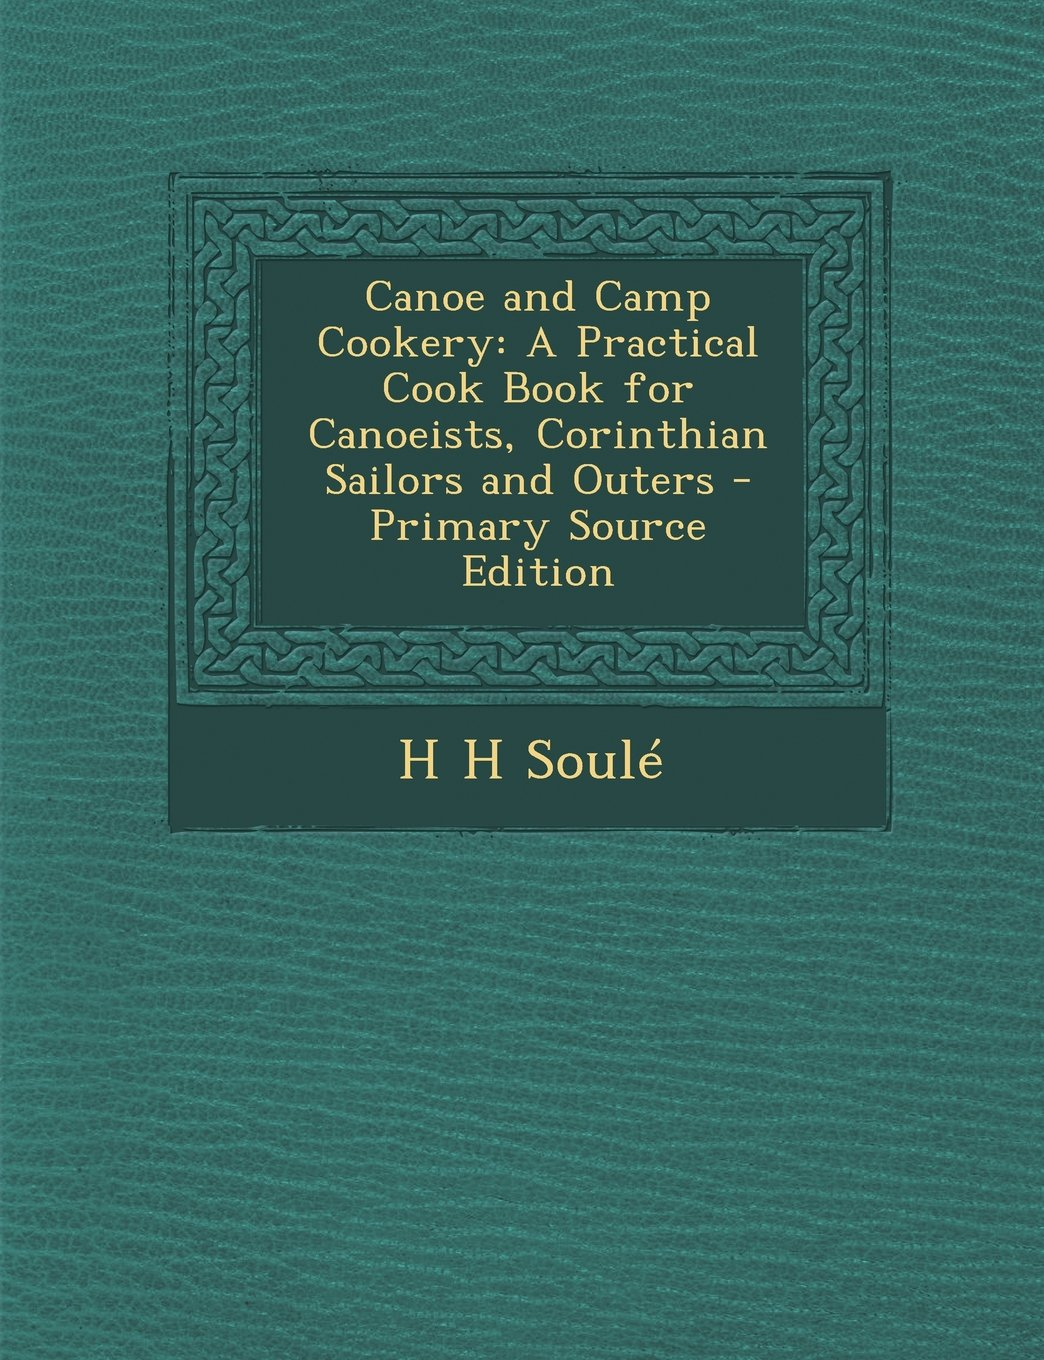 Download Canoe and Camp Cookery: A Practical Cook Book for Canoeists, Corinthian Sailors and Outers - Primary Source Edition pdf